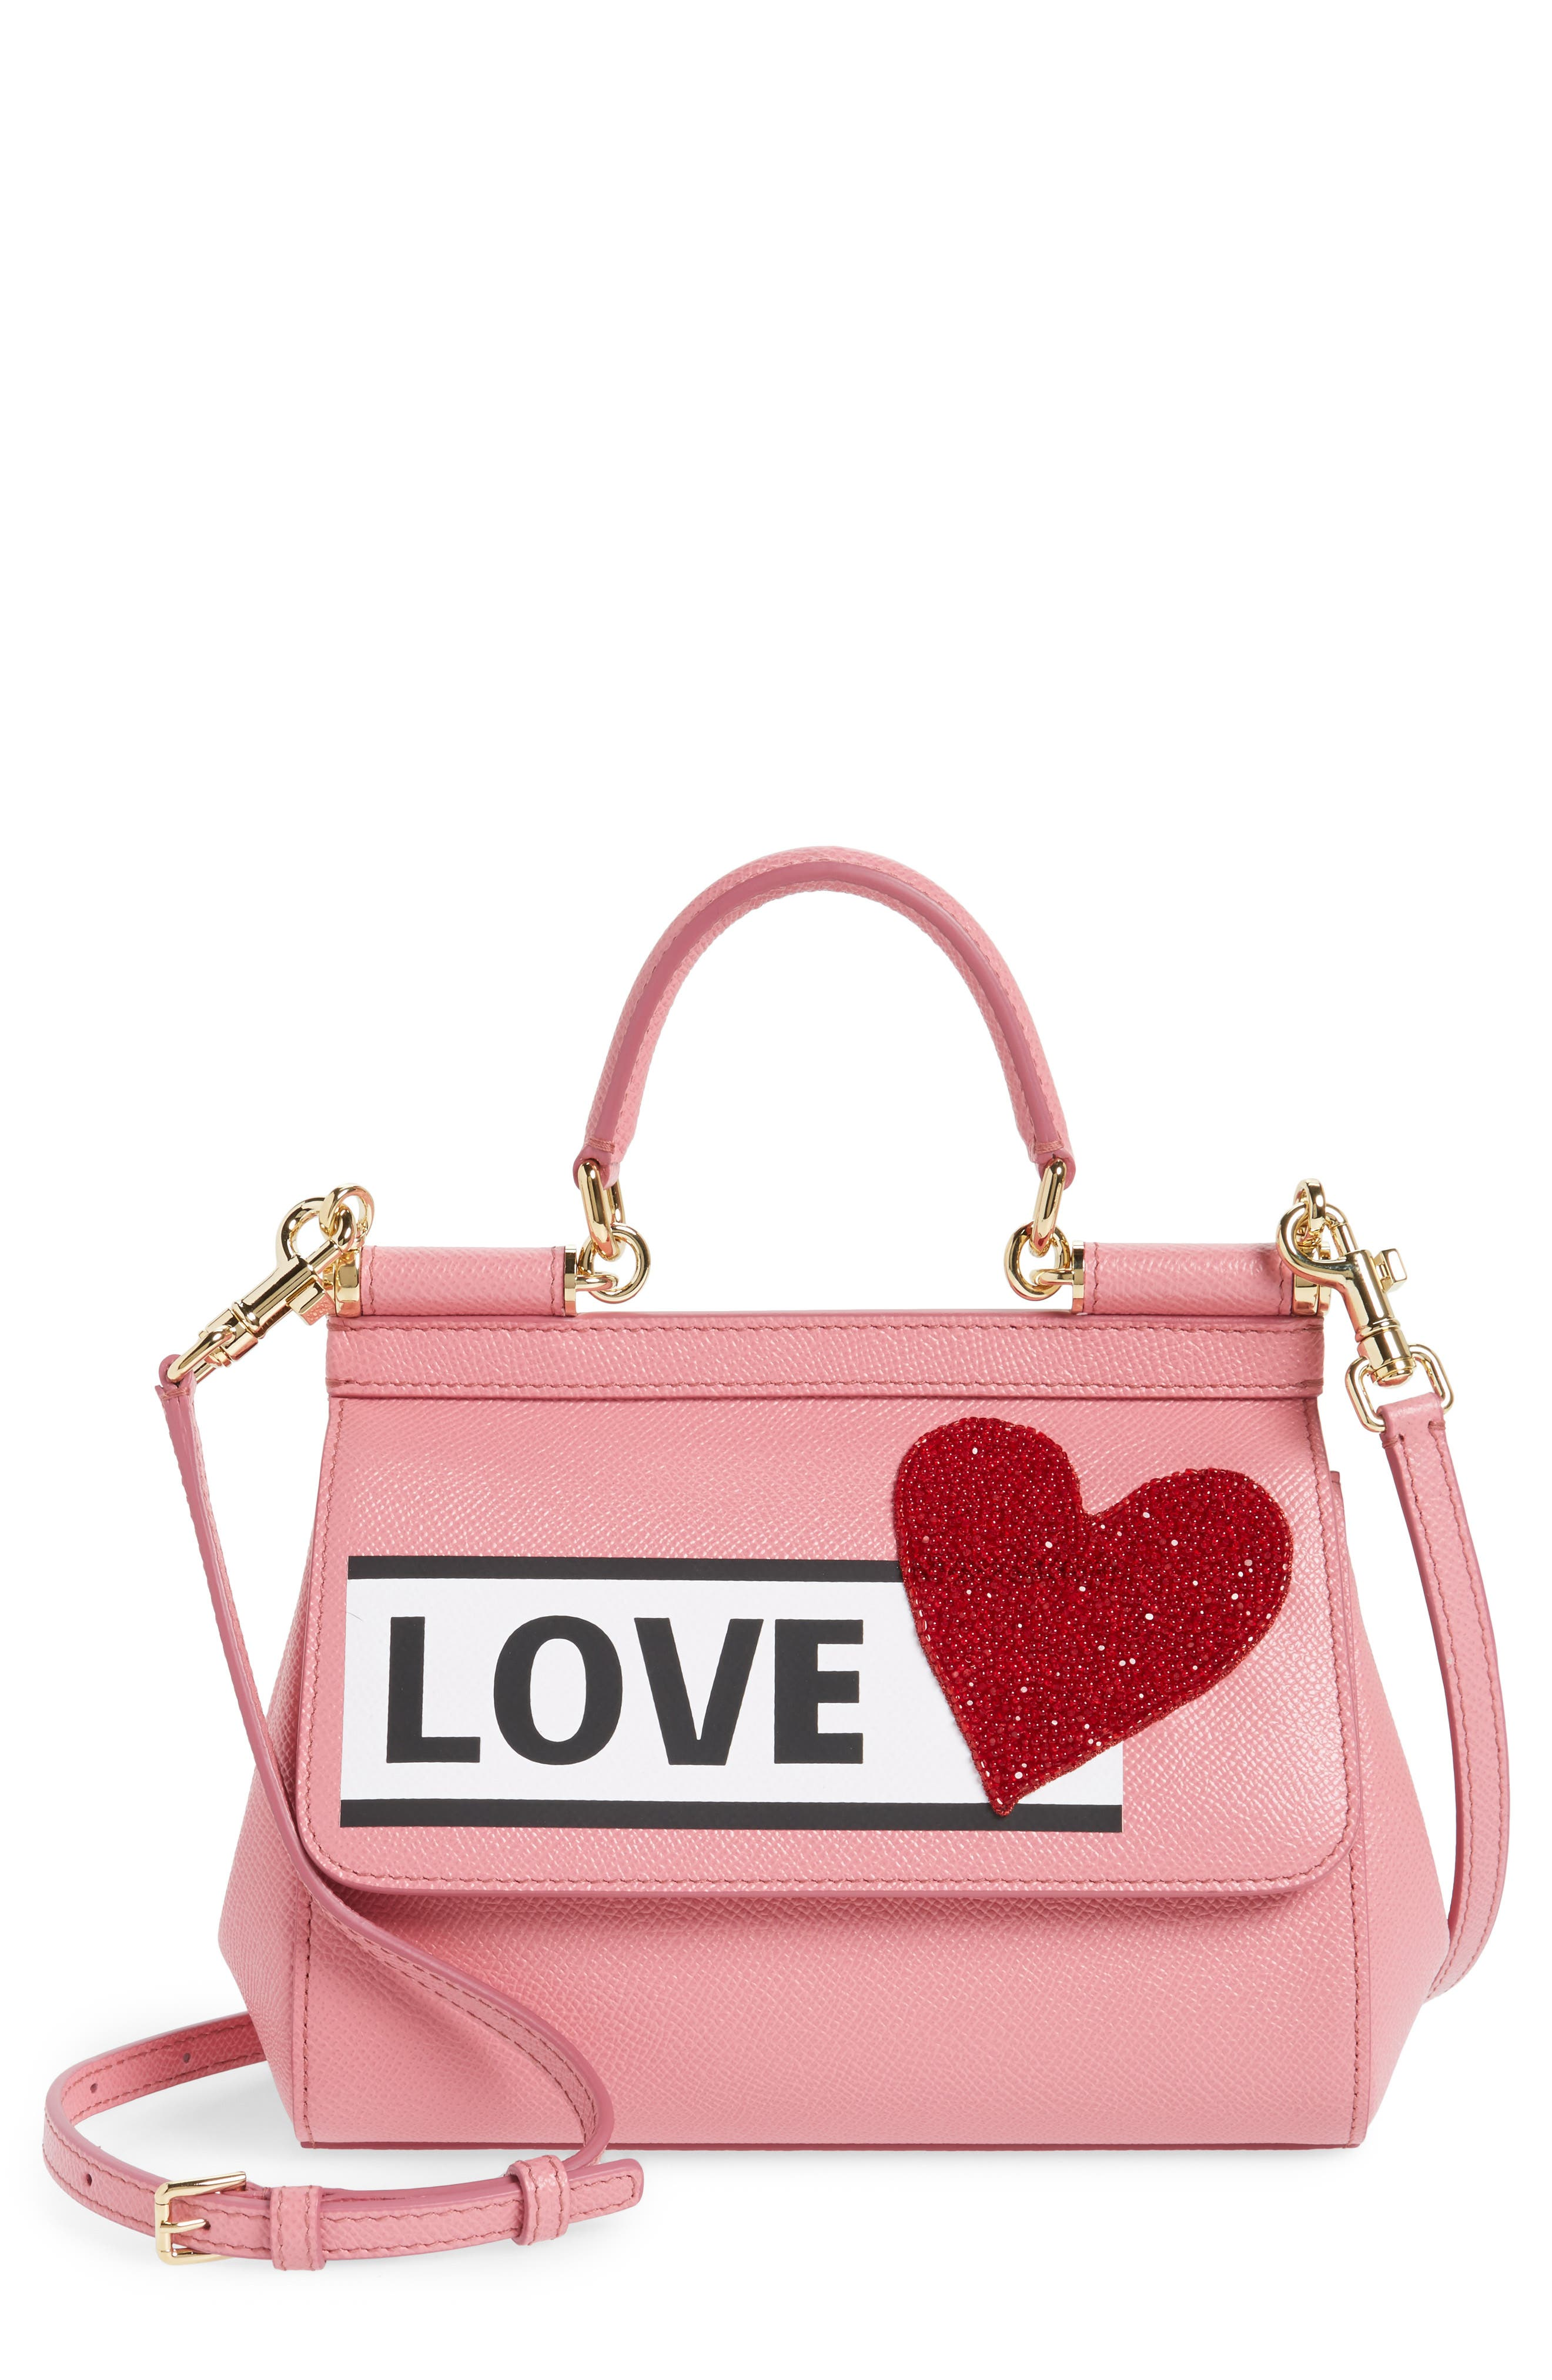 Small Miss Sicily - Love Leather Satchel,                             Main thumbnail 1, color,                             Rosa Intenso